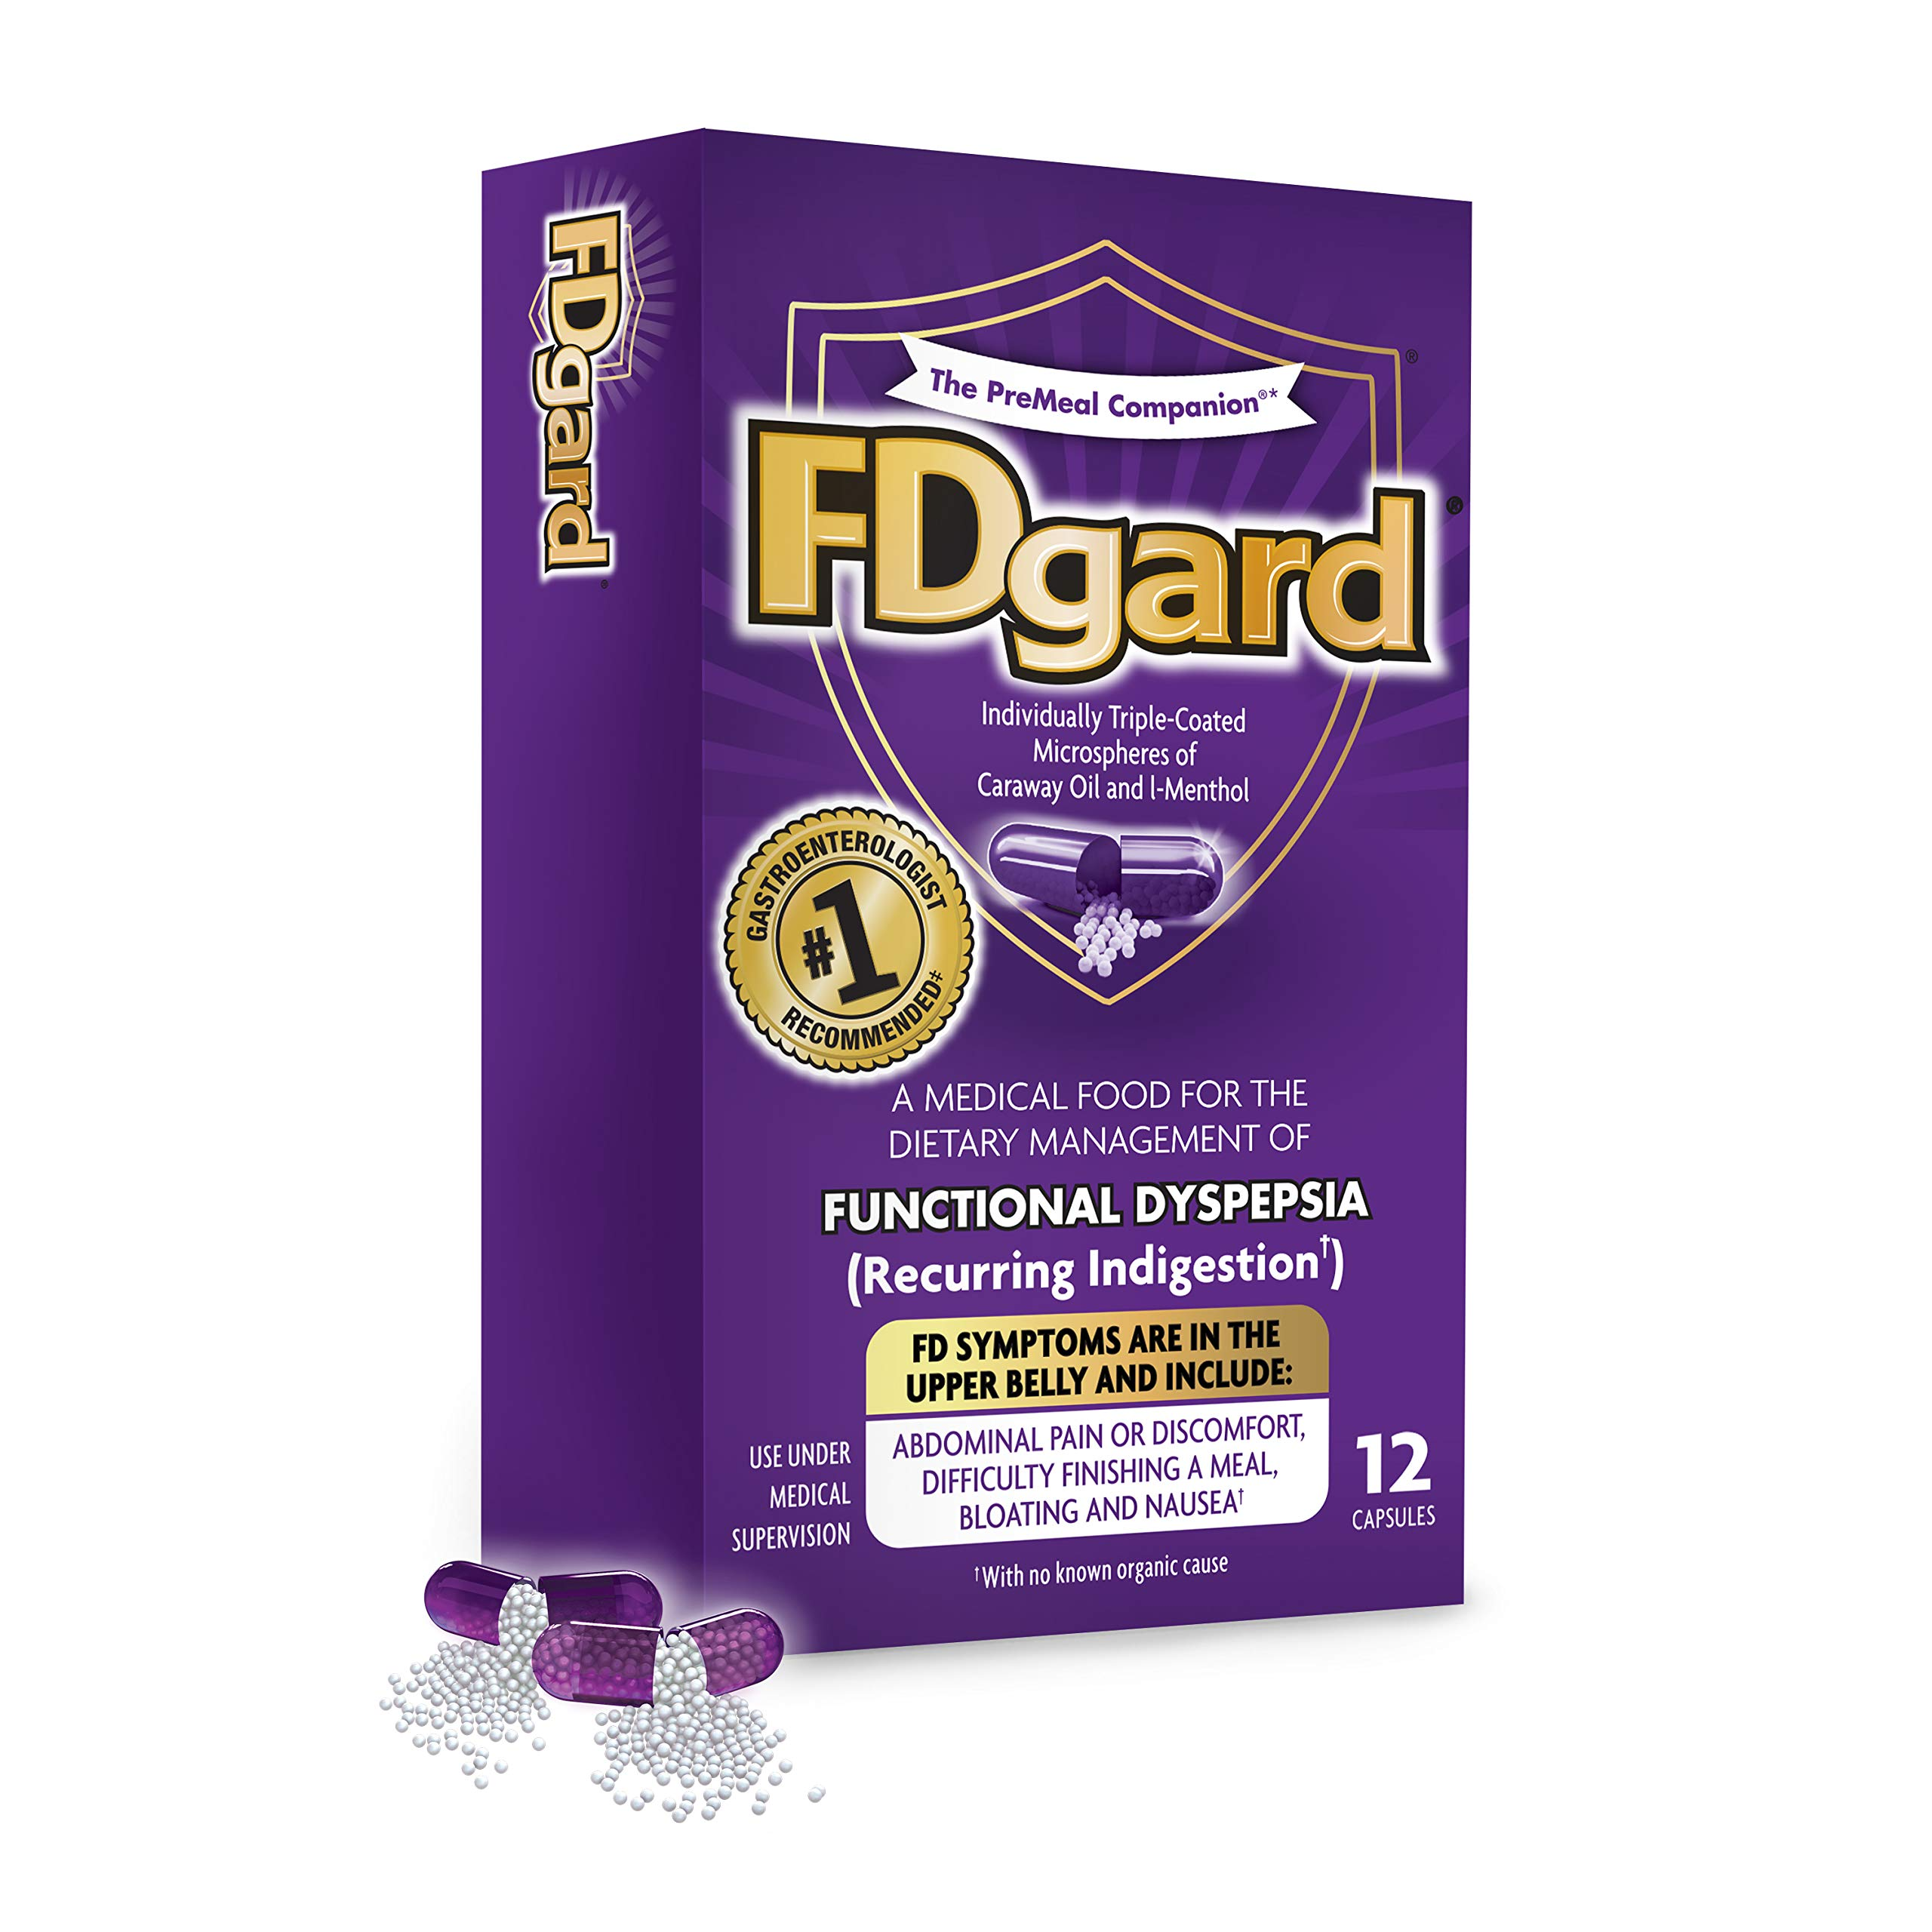 FDgard® for the Dietary Management of Functional Dyspepsia (Recurring Indigestion) Symptoms Including, Abdominal Discomfort, Difficulty Finishing a Meal, Bloating†*, Nausea, 12 Capsules